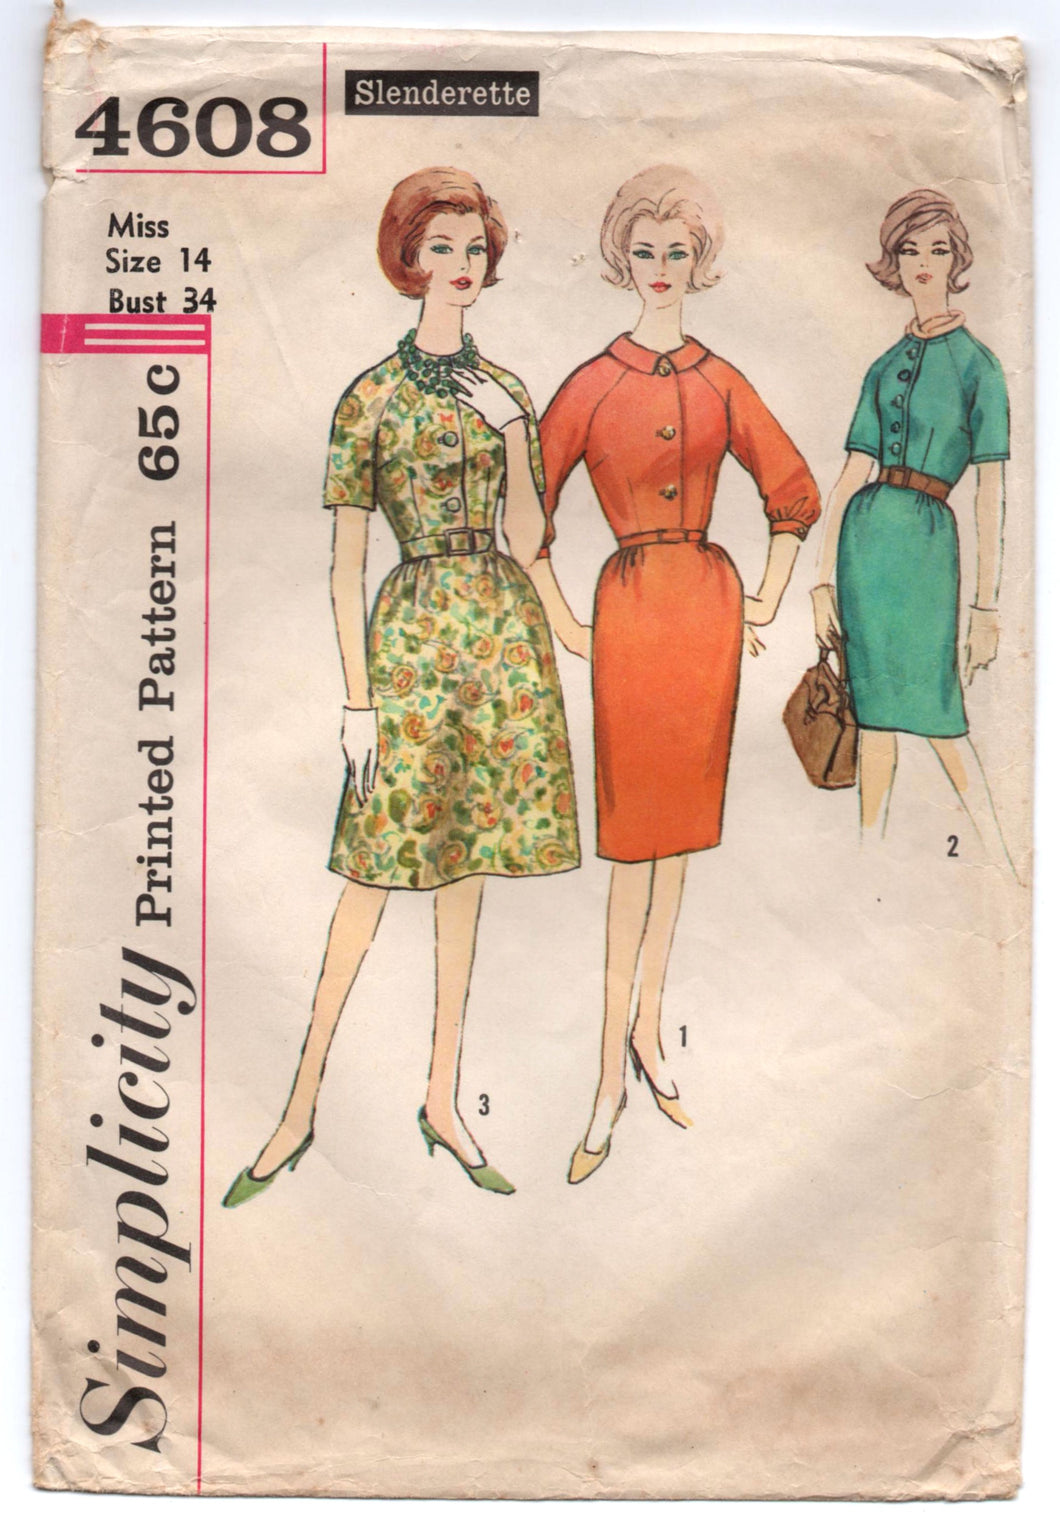 1960's Simplicity One-Piece Day Dress with Pencil or A Line Skirt Pattern - Bust 34